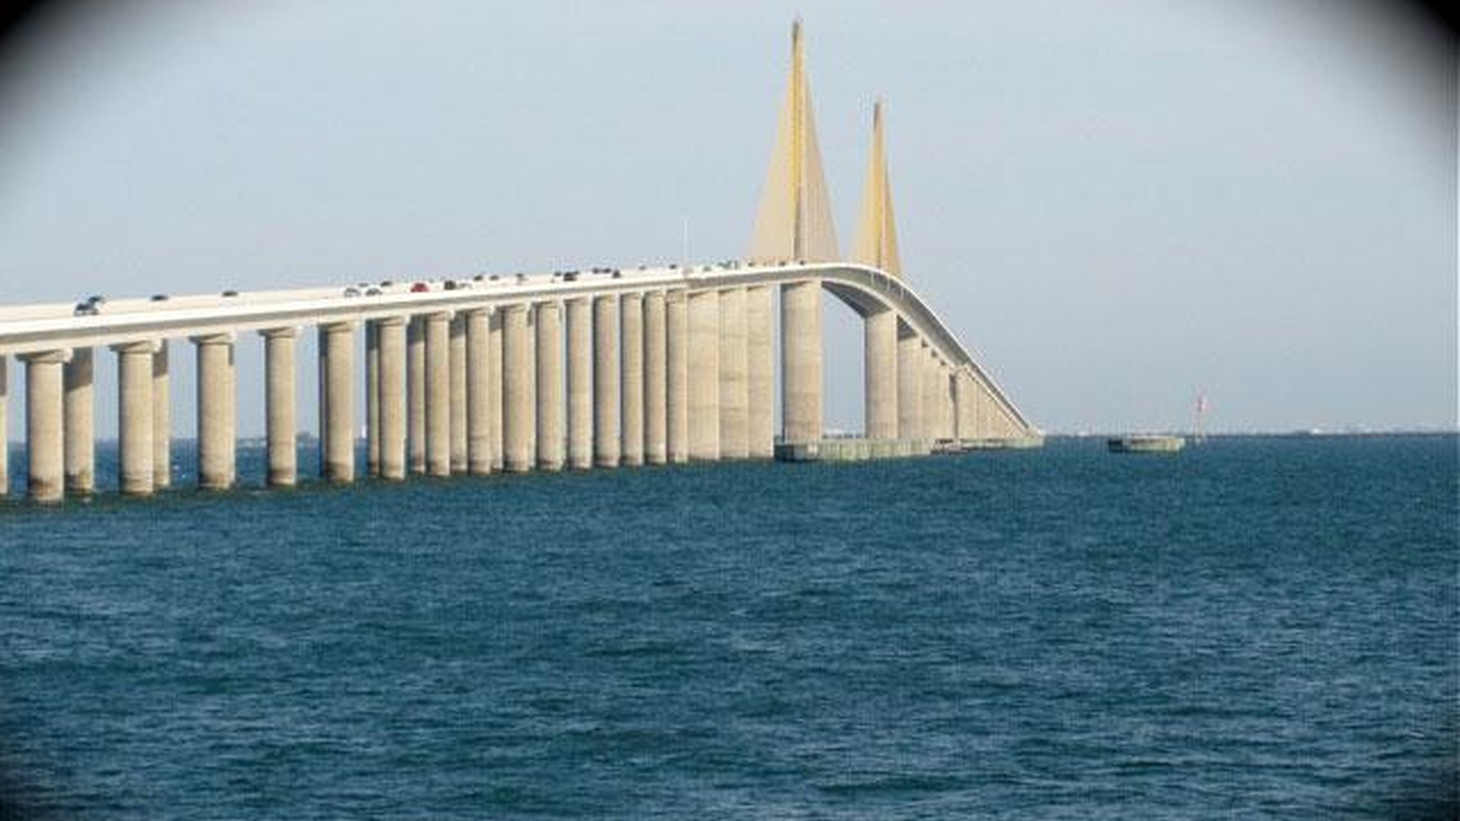 This radio piece, created by independent producer Rich Halten, is the story of a man who threw himself off the Sunshine Skyway Bridge over Tampa Bay in Florida....